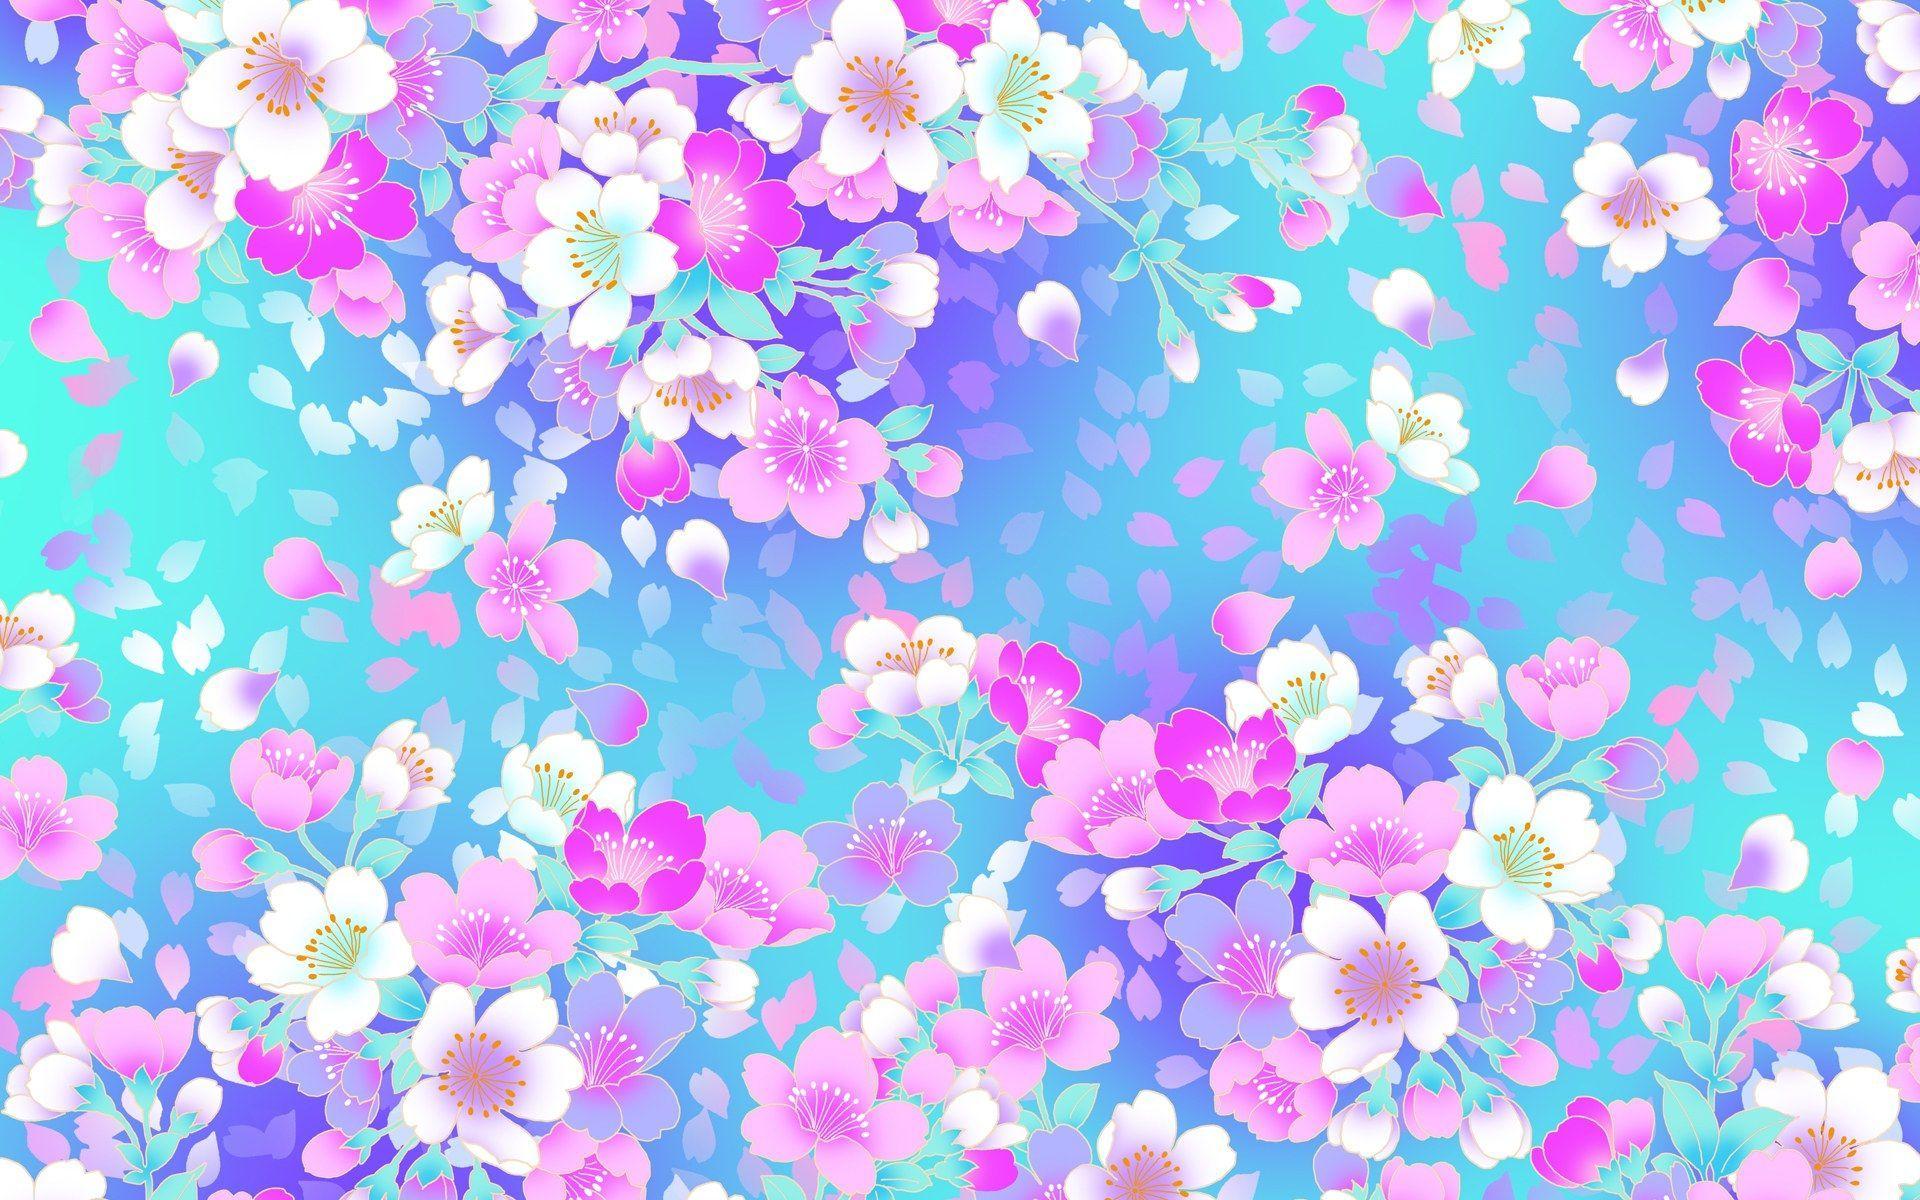 Girly Colorful Pattern Wallpapers Top Free Girly Colorful Pattern Backgrounds Wallpaperaccess